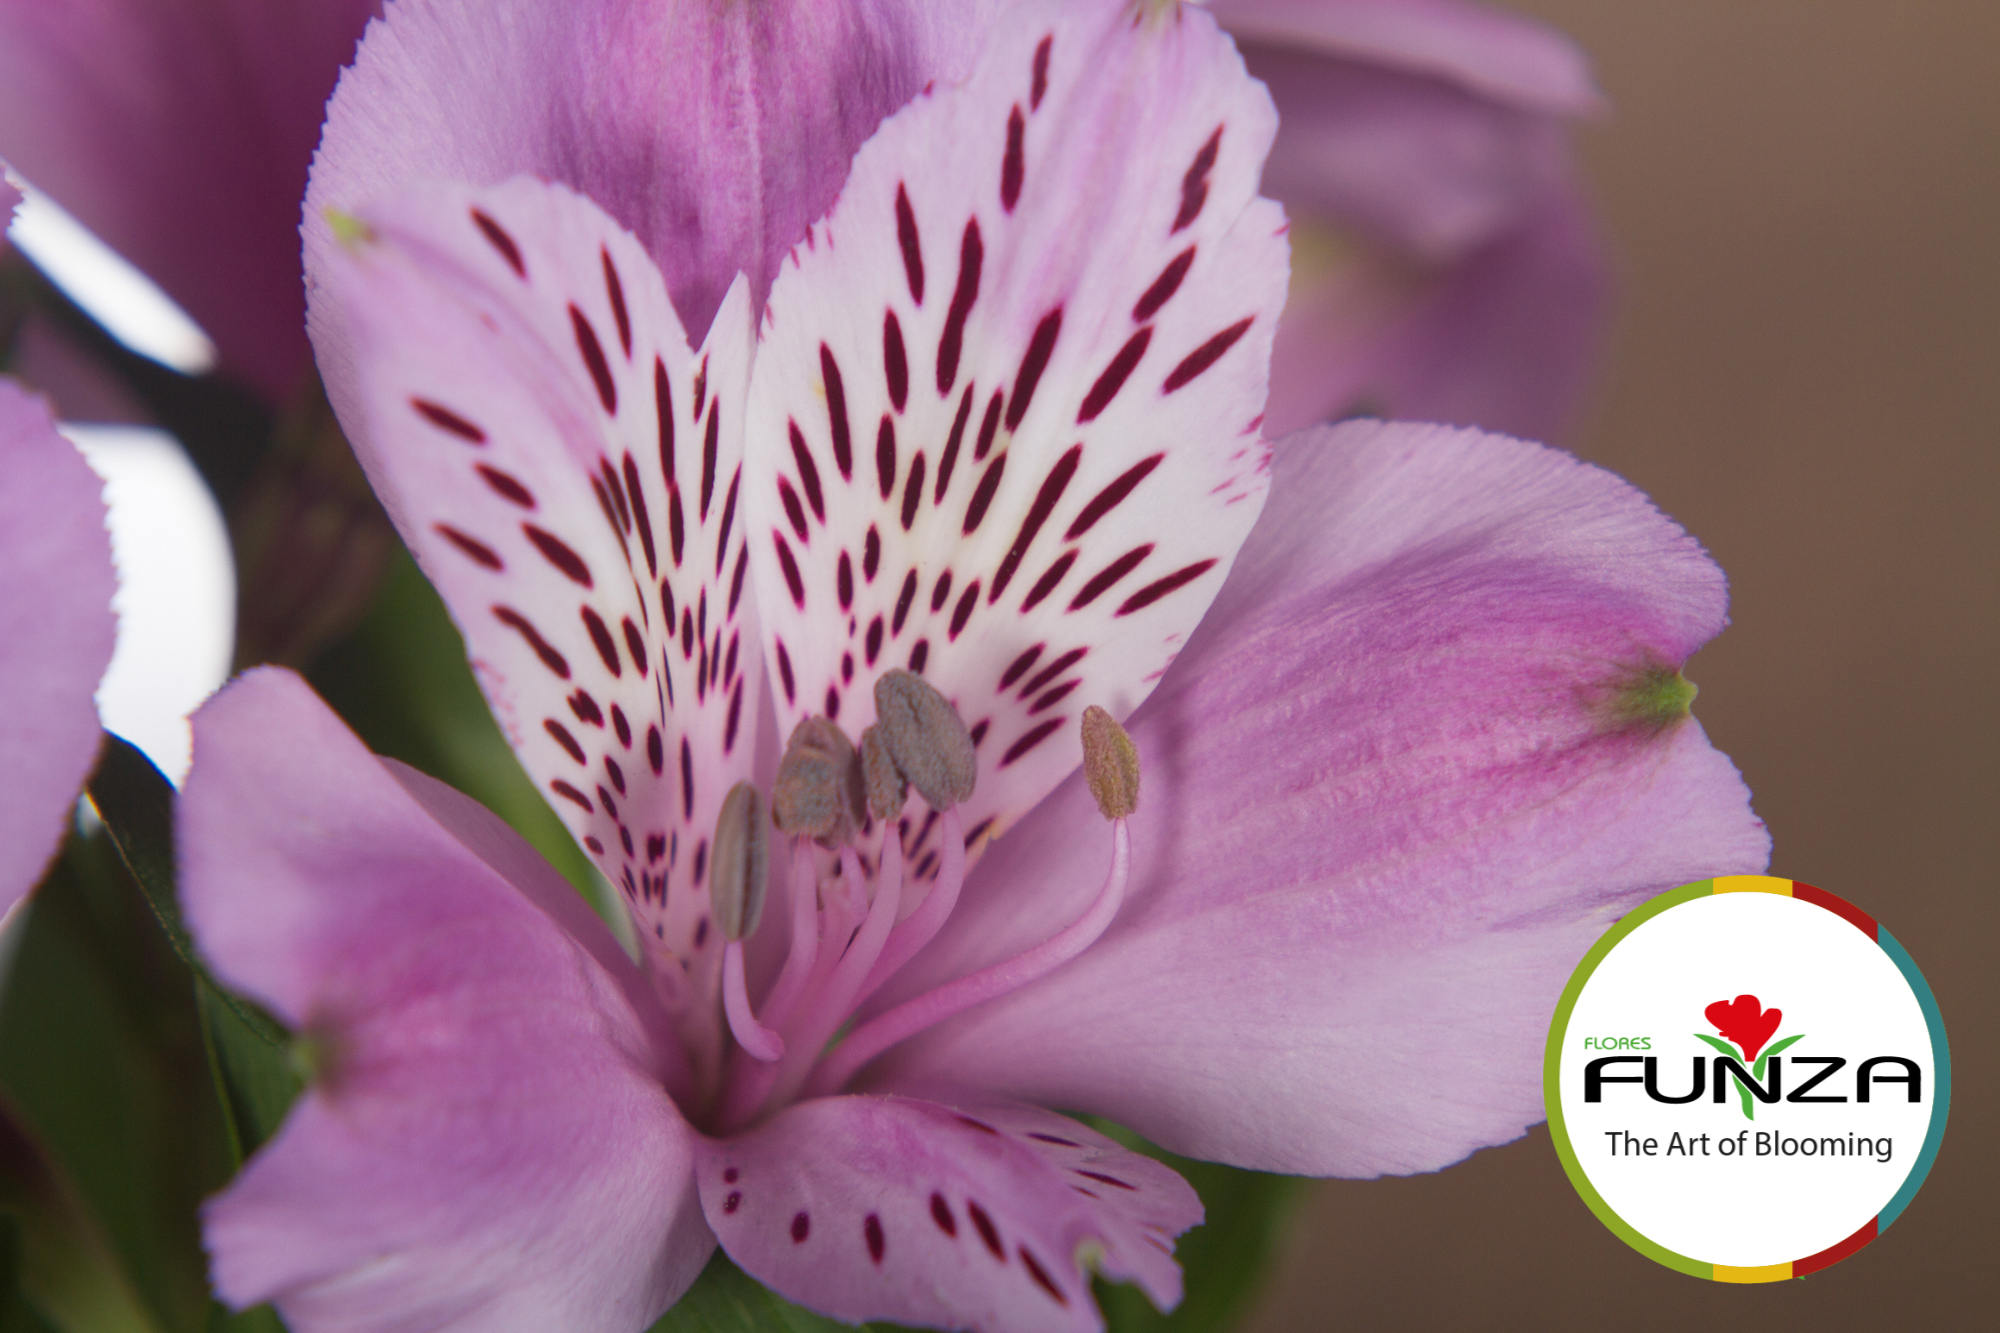 jewell (4) - Flores Funza